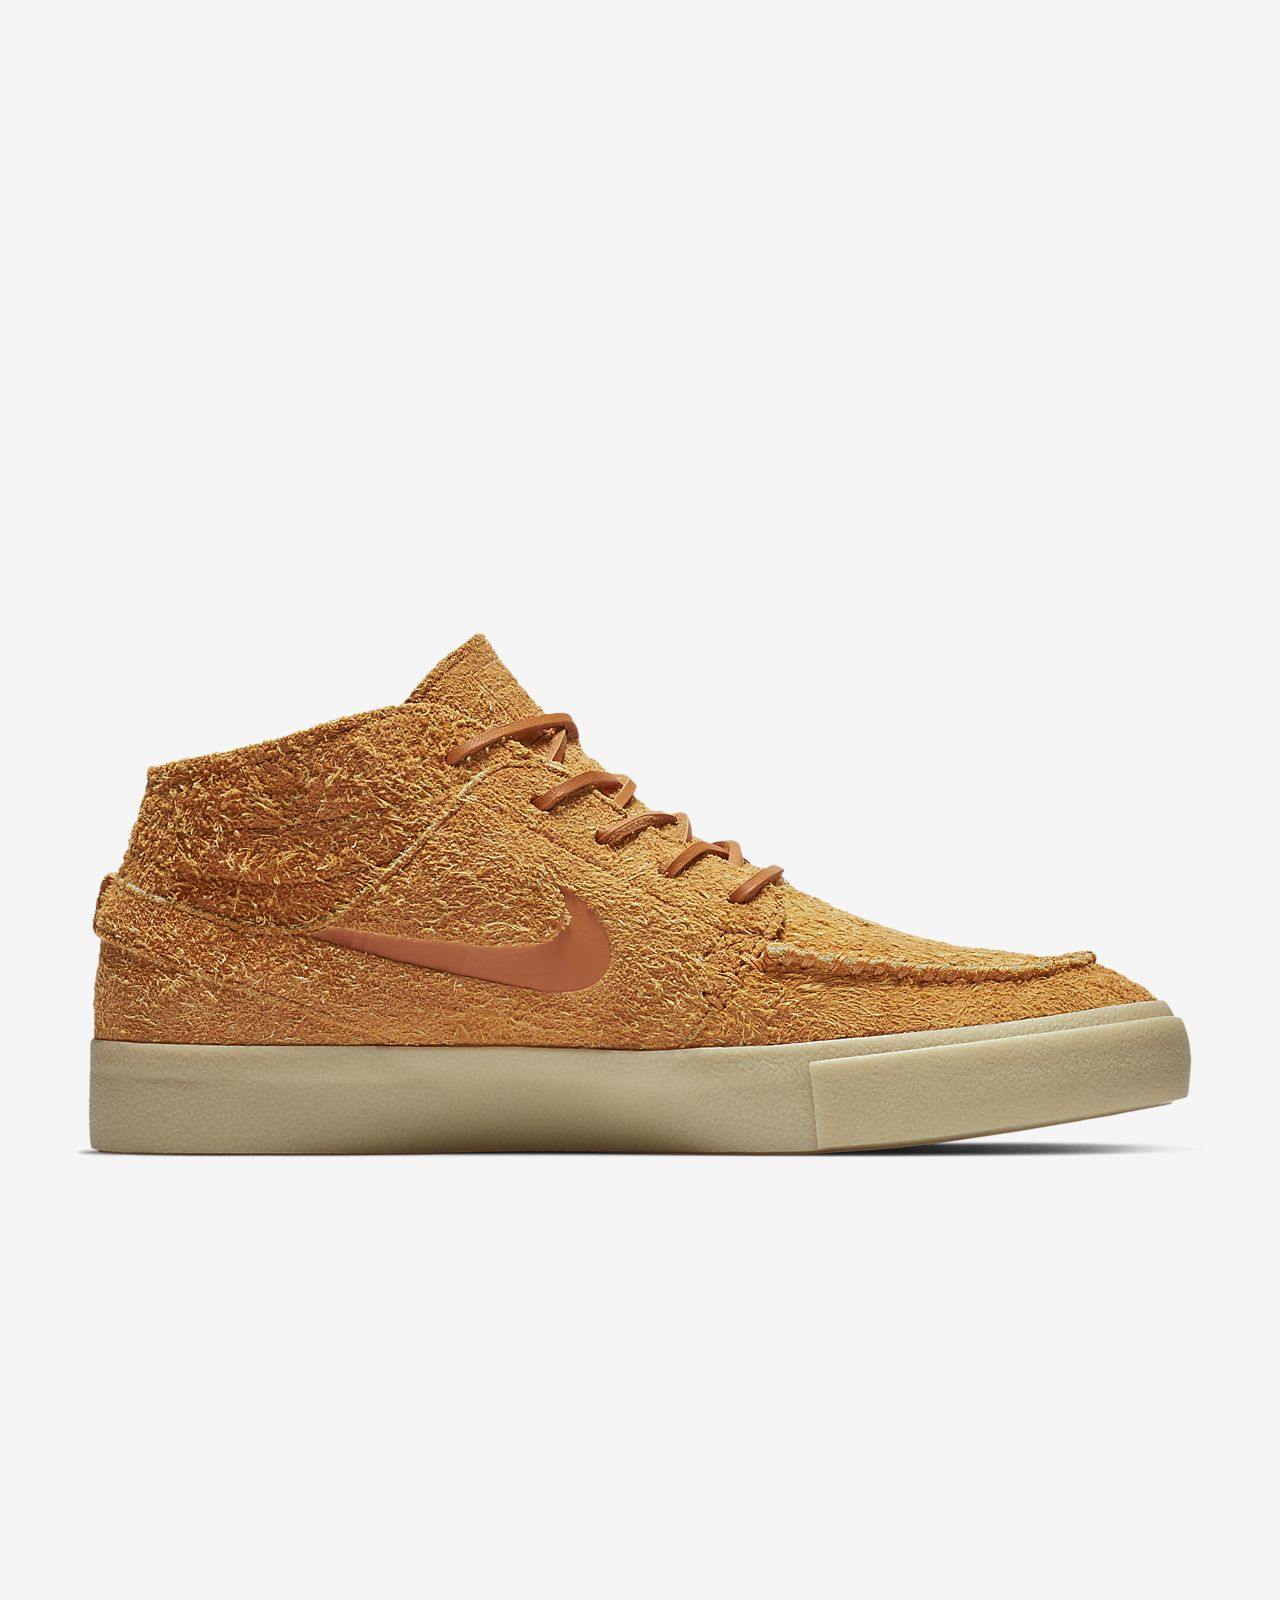 huge discount a477d 1d9cf ... Chaussure de skateboard Nike SB Zoom Janoski Mid Crafted pour Homme